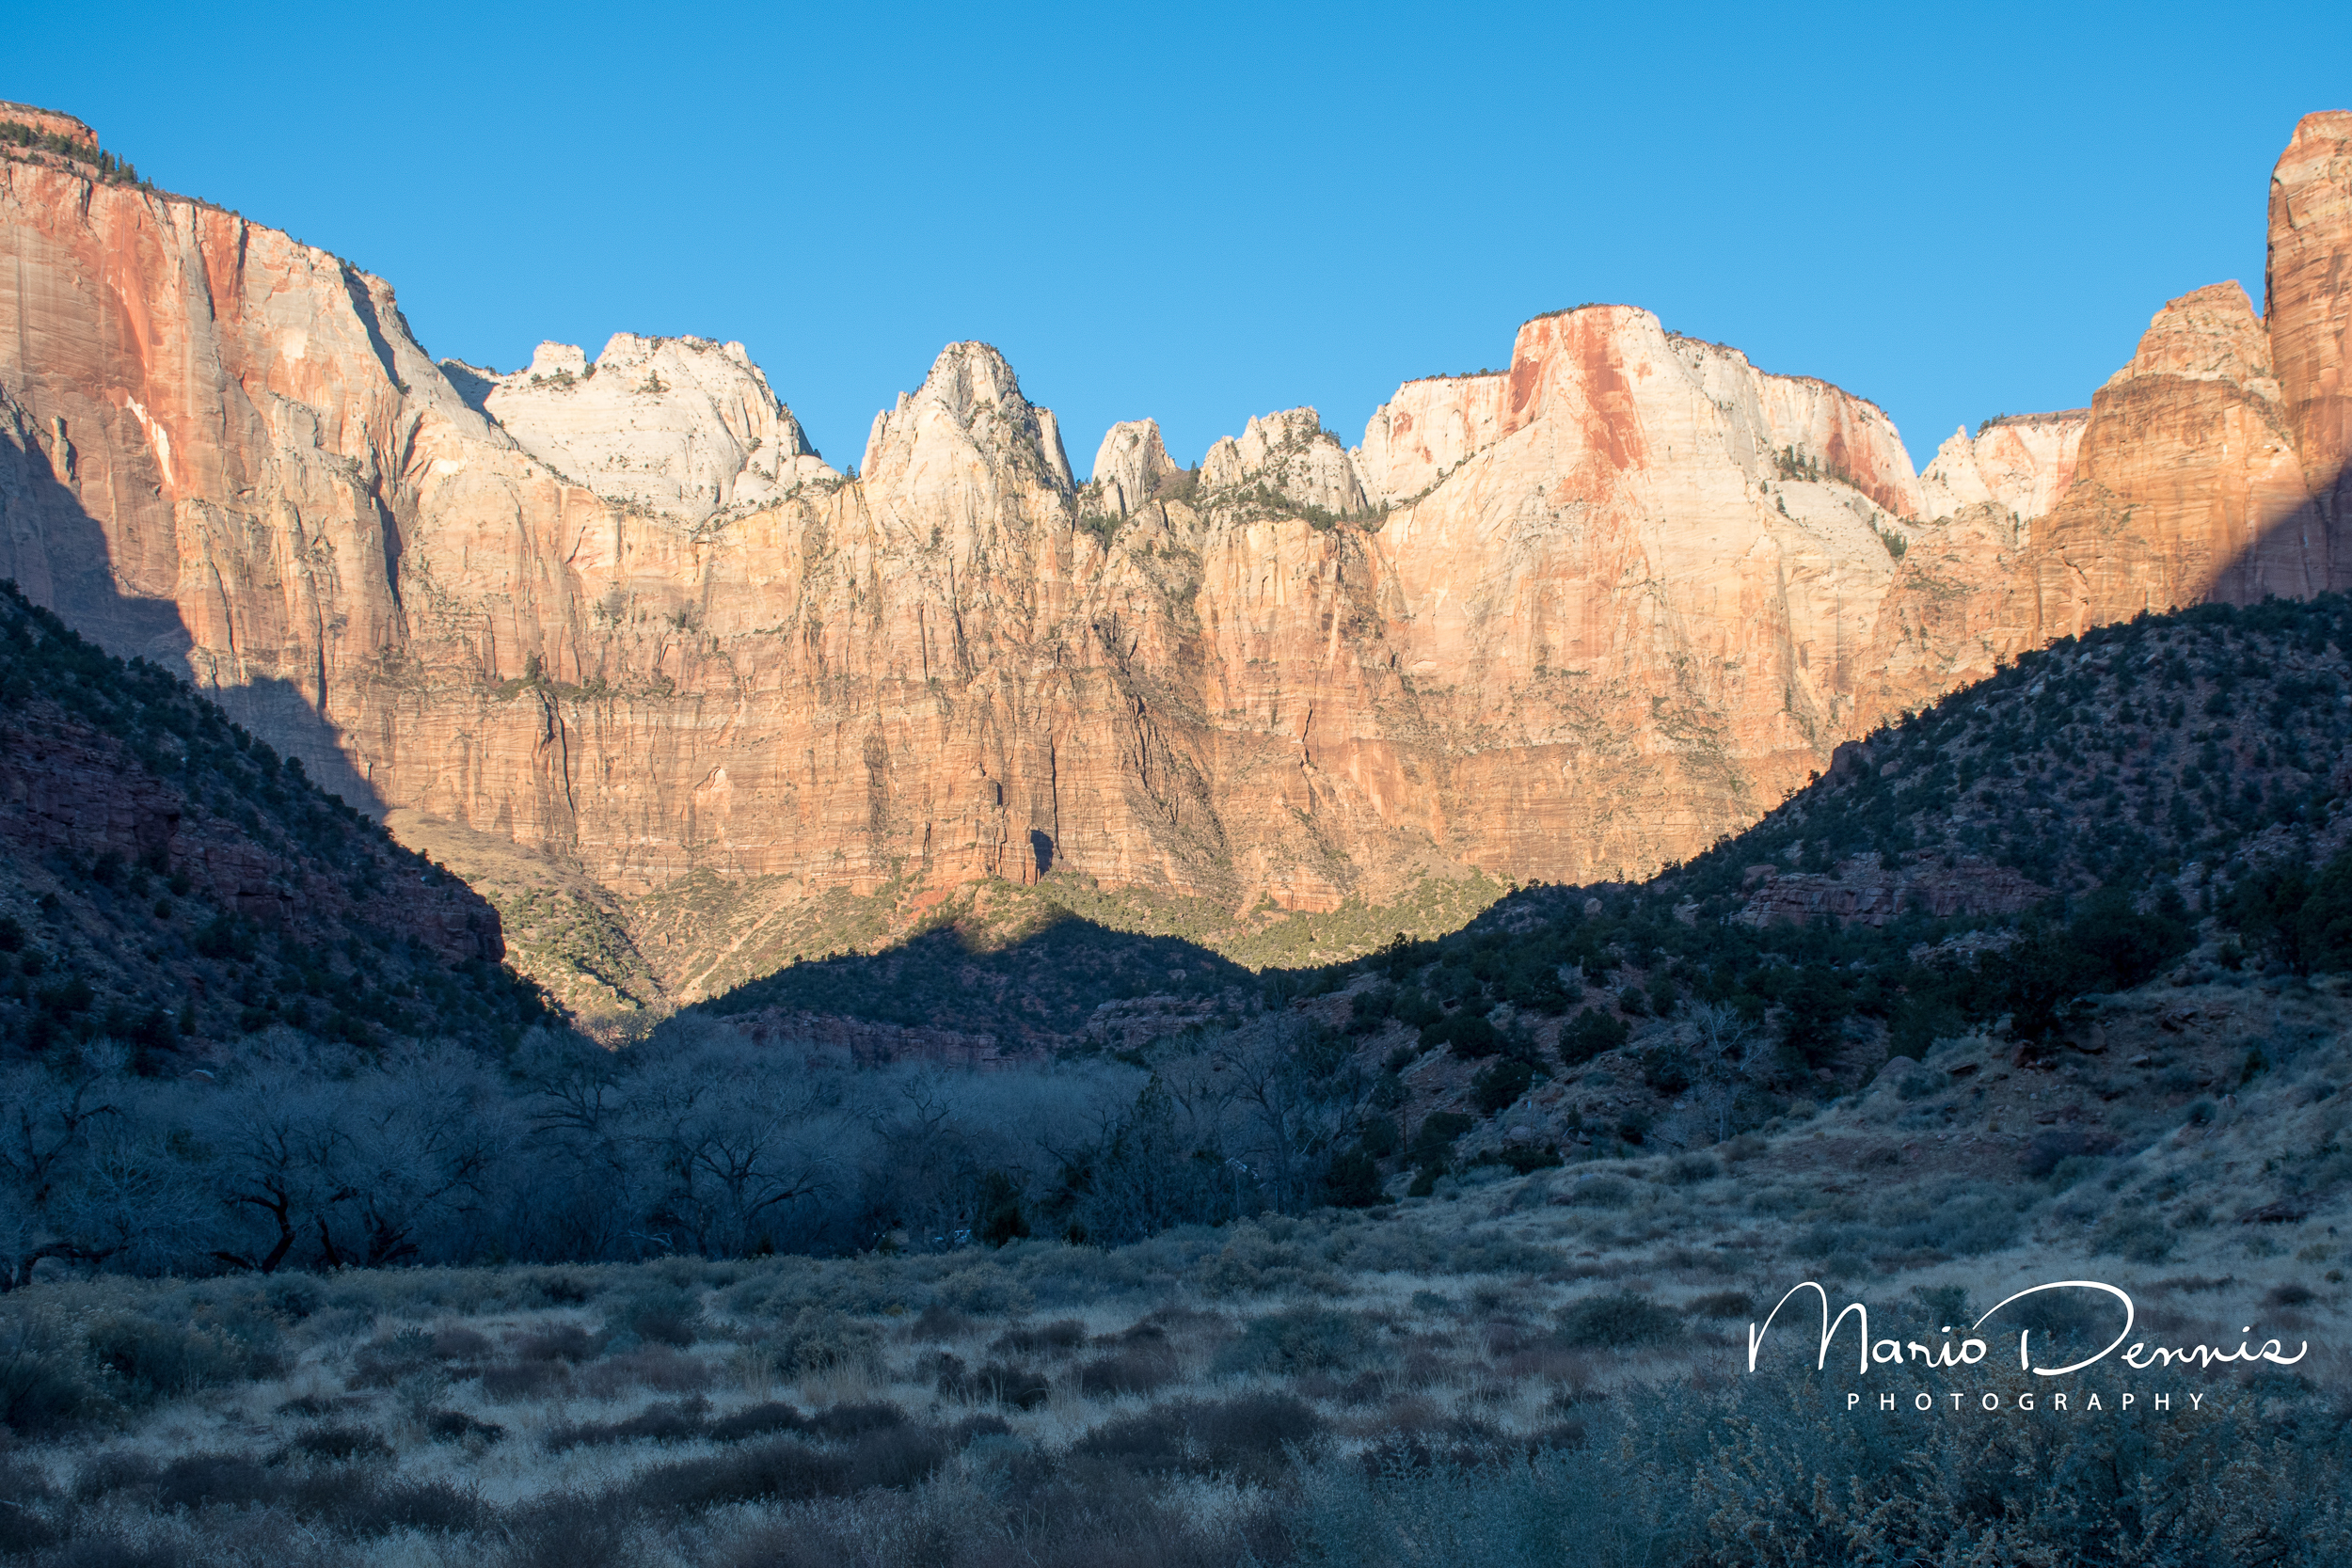 Towers of the Virgin, Zion National Park, UT